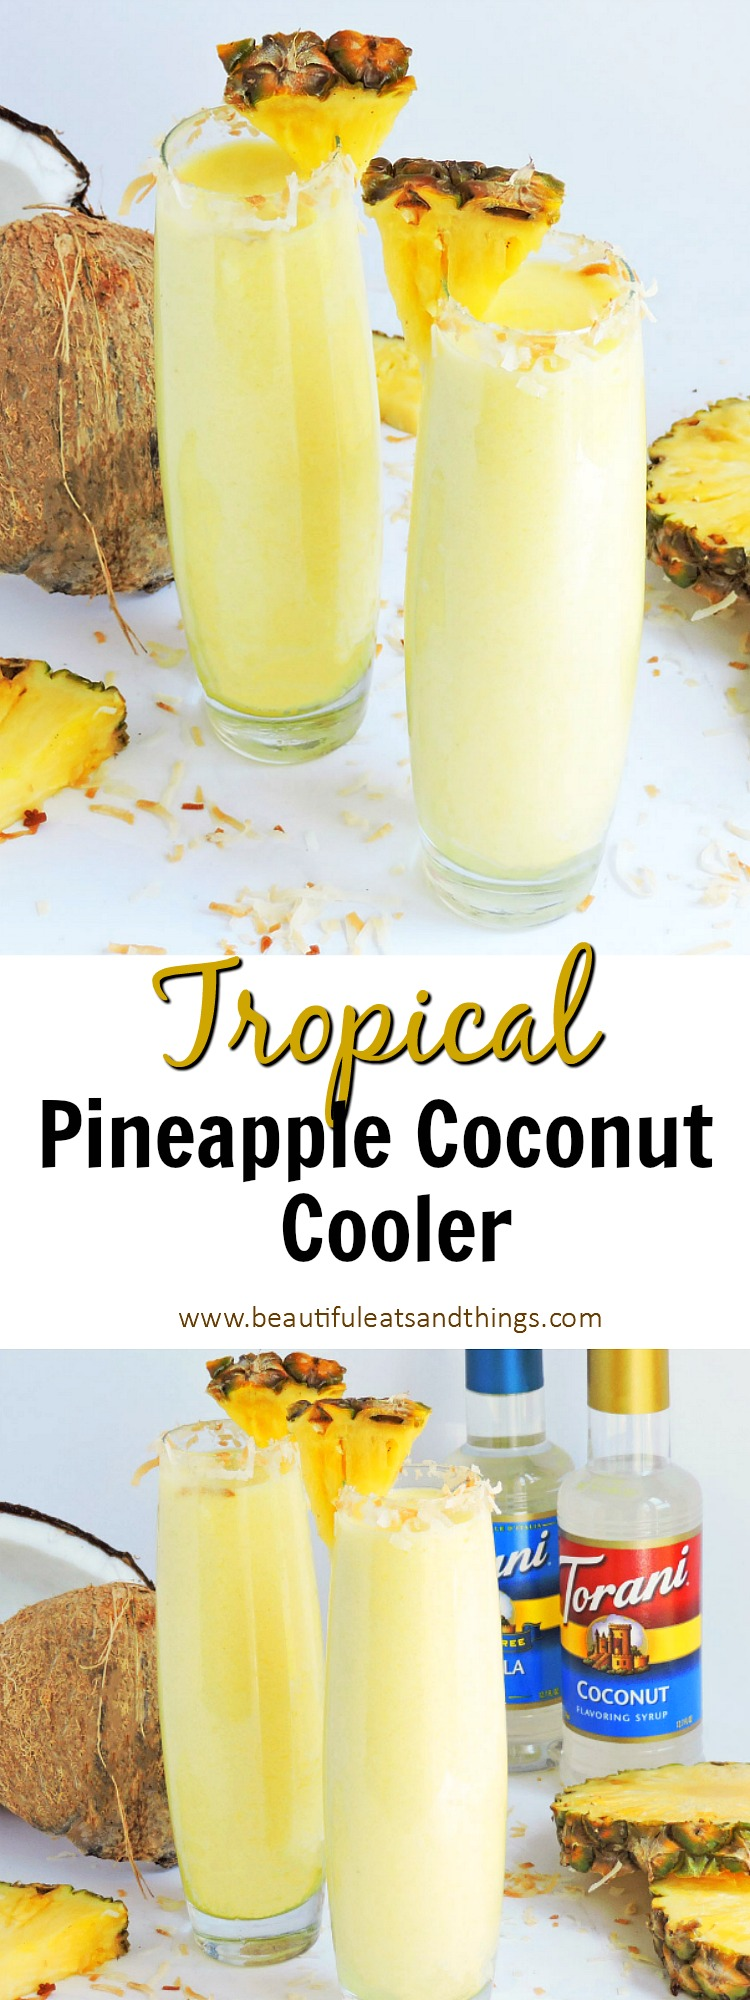 Tropical Pineapple Coconut Cooler